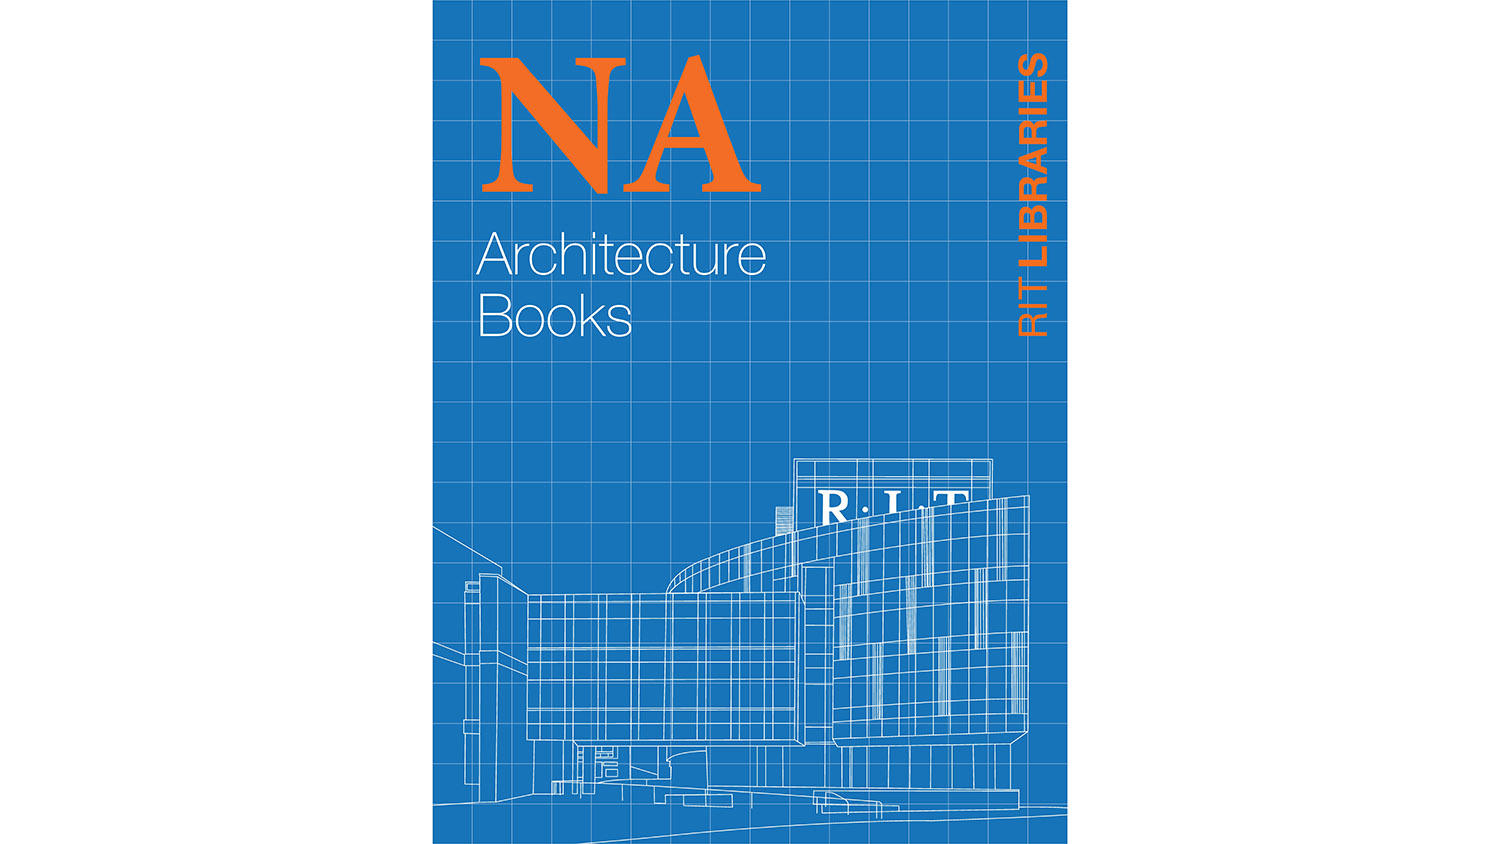 Poster for Architecture Books